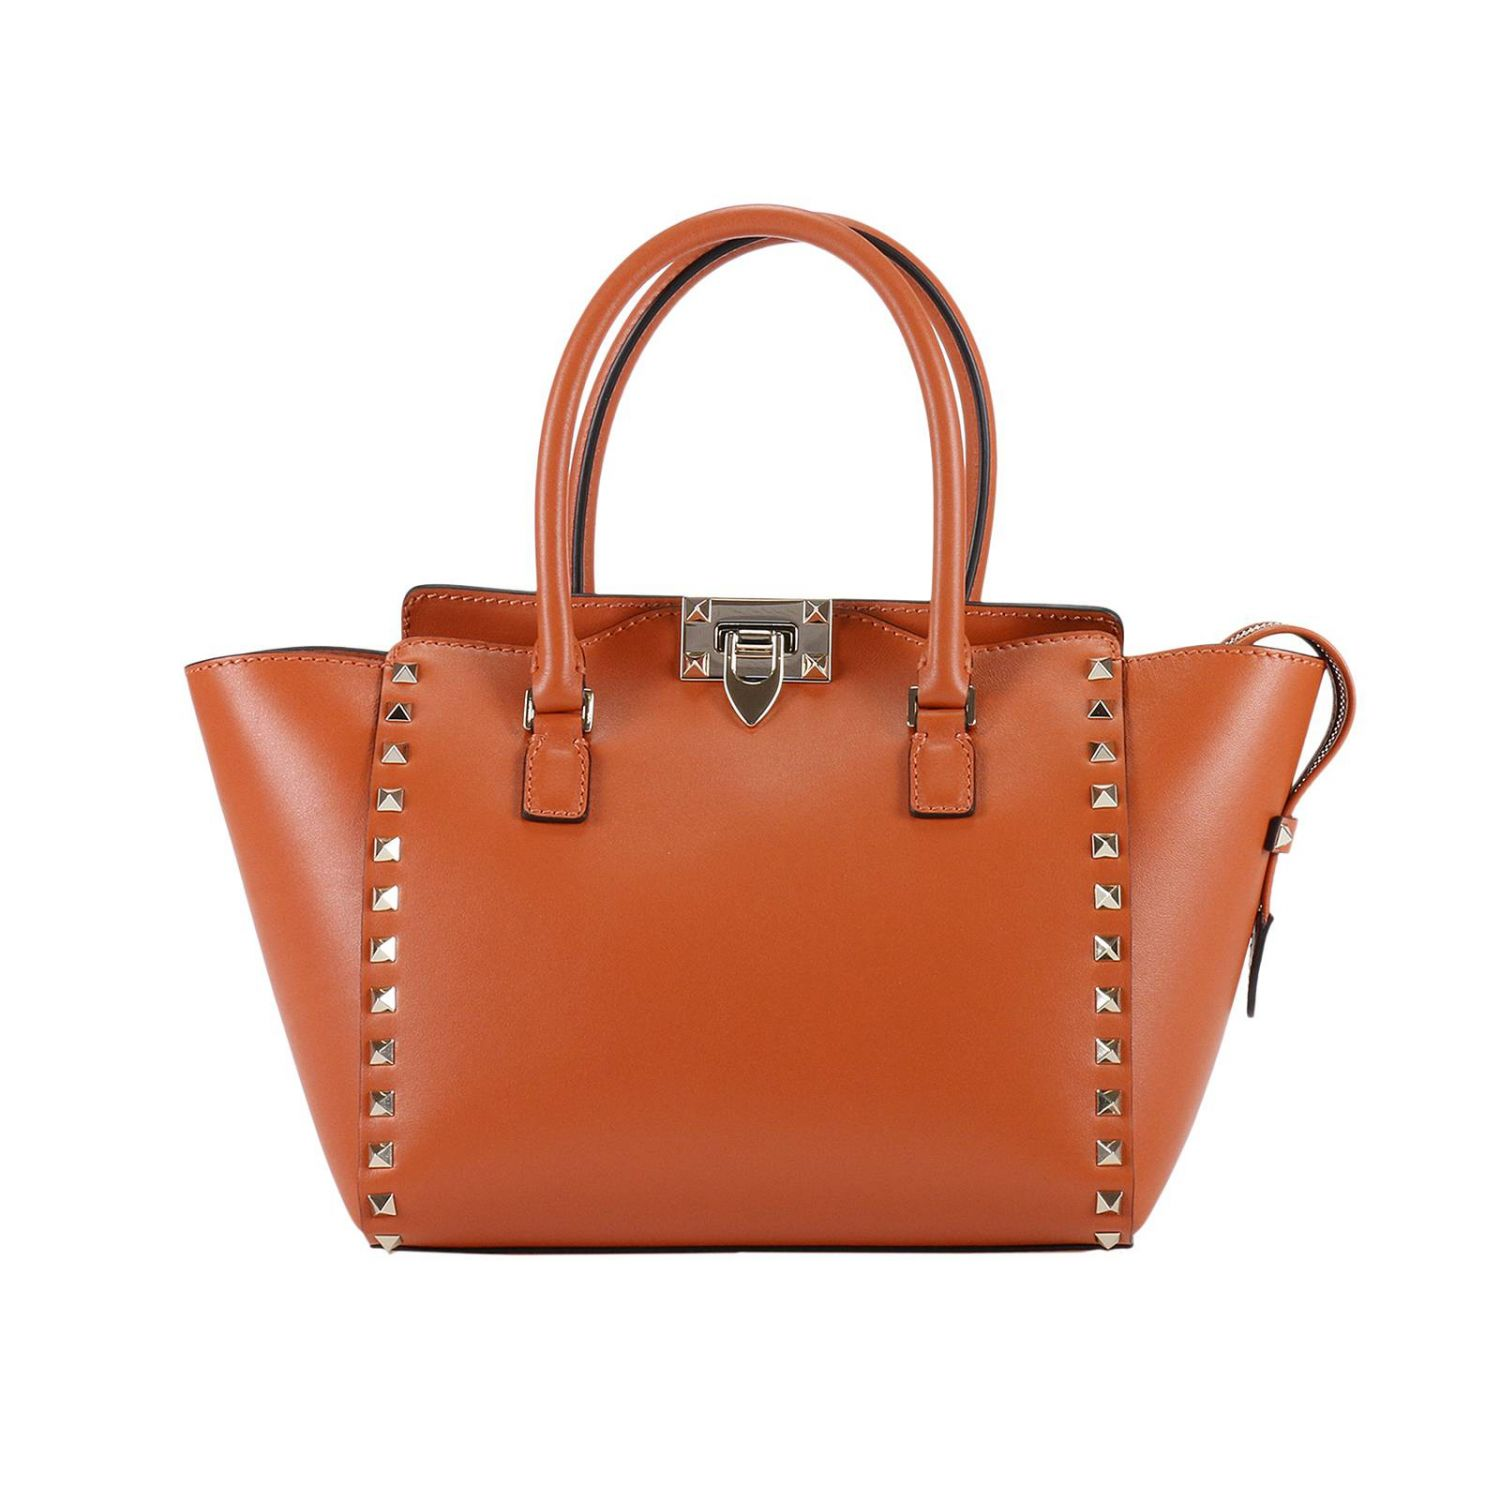 Handbag Rockstud Small Bag With Micro Studs And Shoulder Strap 8150901